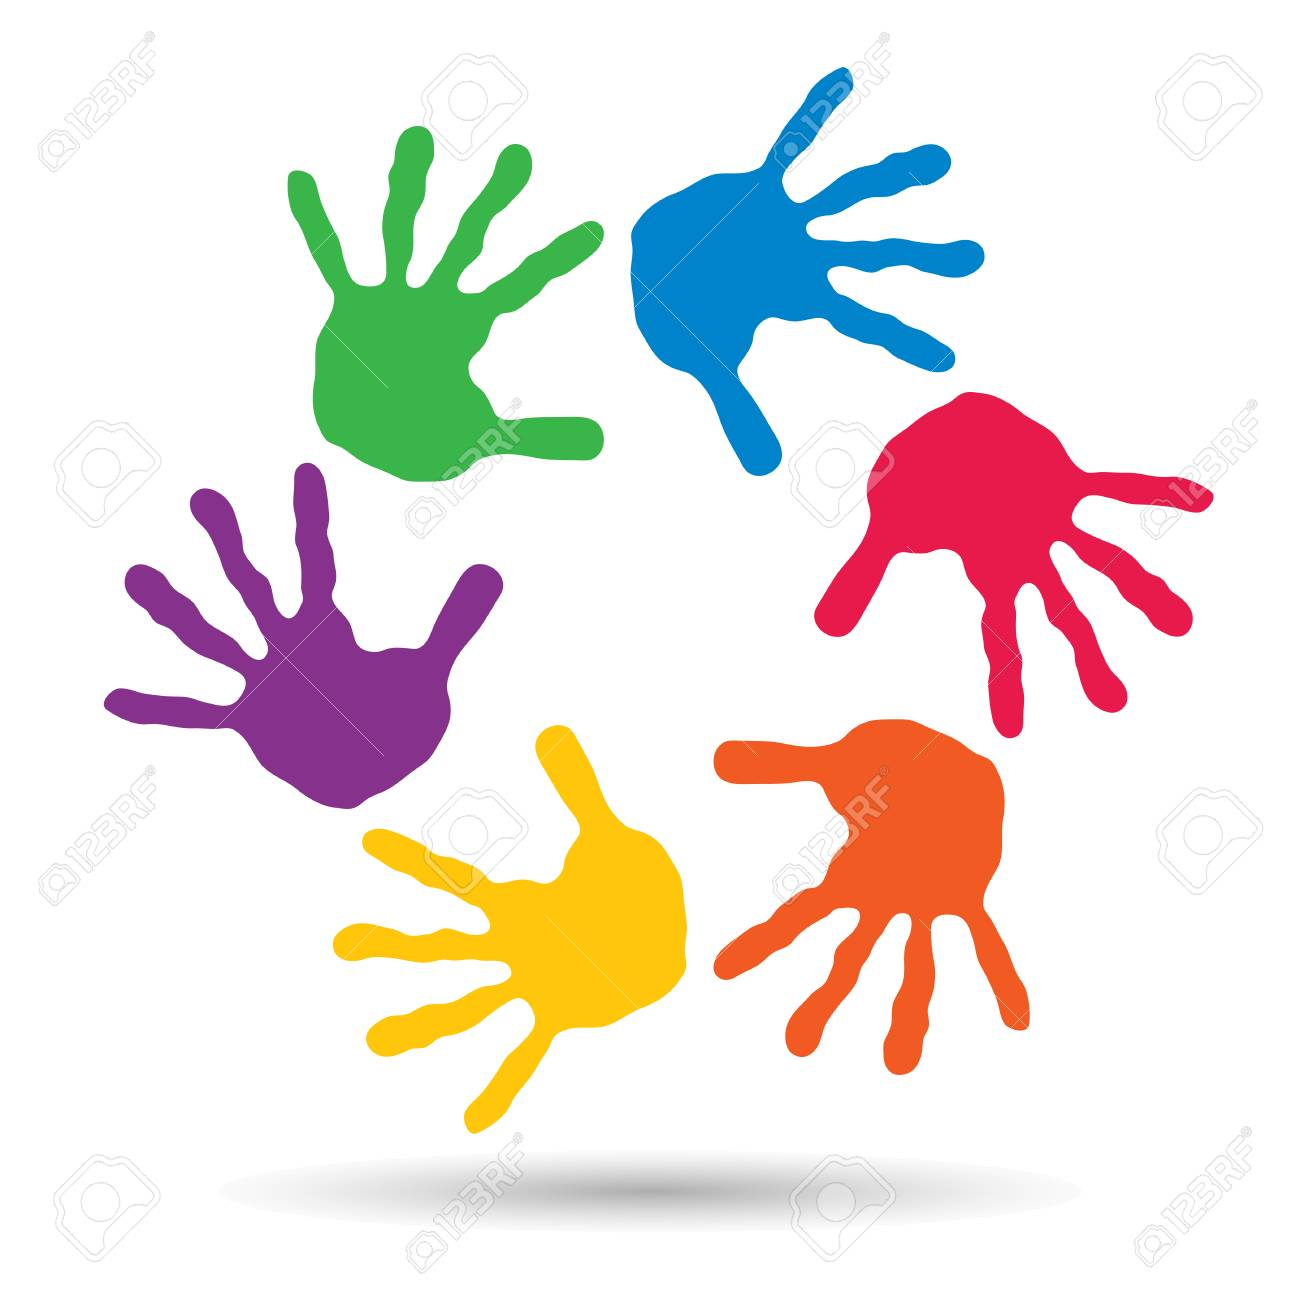 Concept Or Conceptual Children Painted Hand Print Isolated On